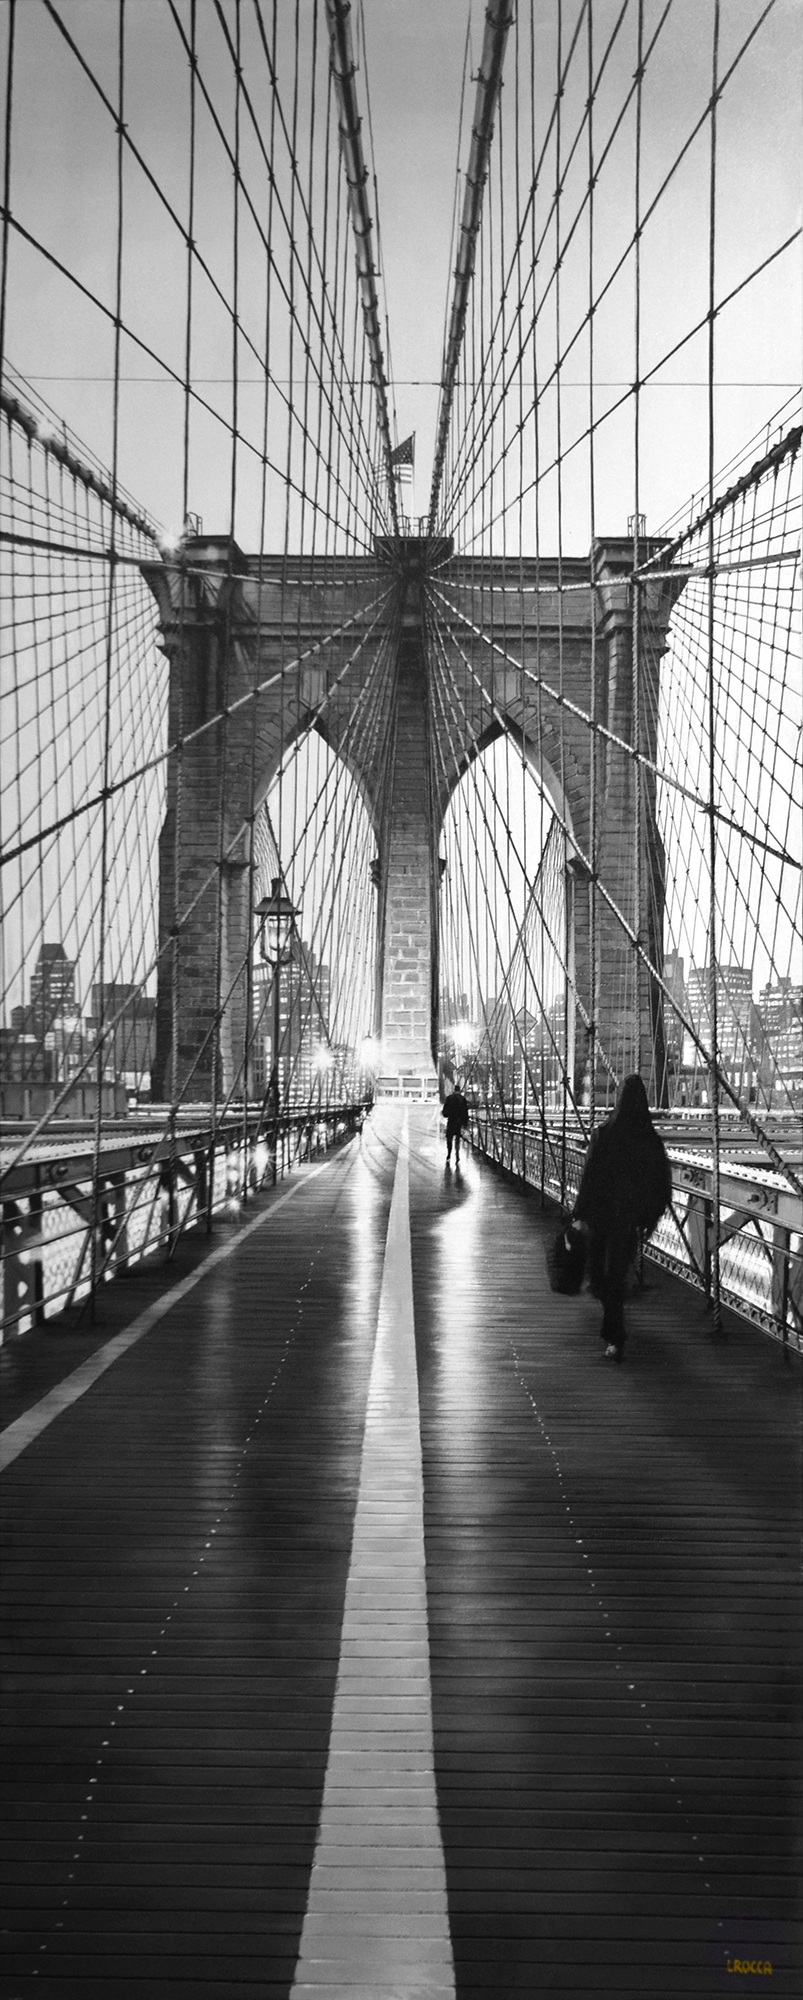 Luigi Rocca - Walking through the Bridge , 6855-006-793